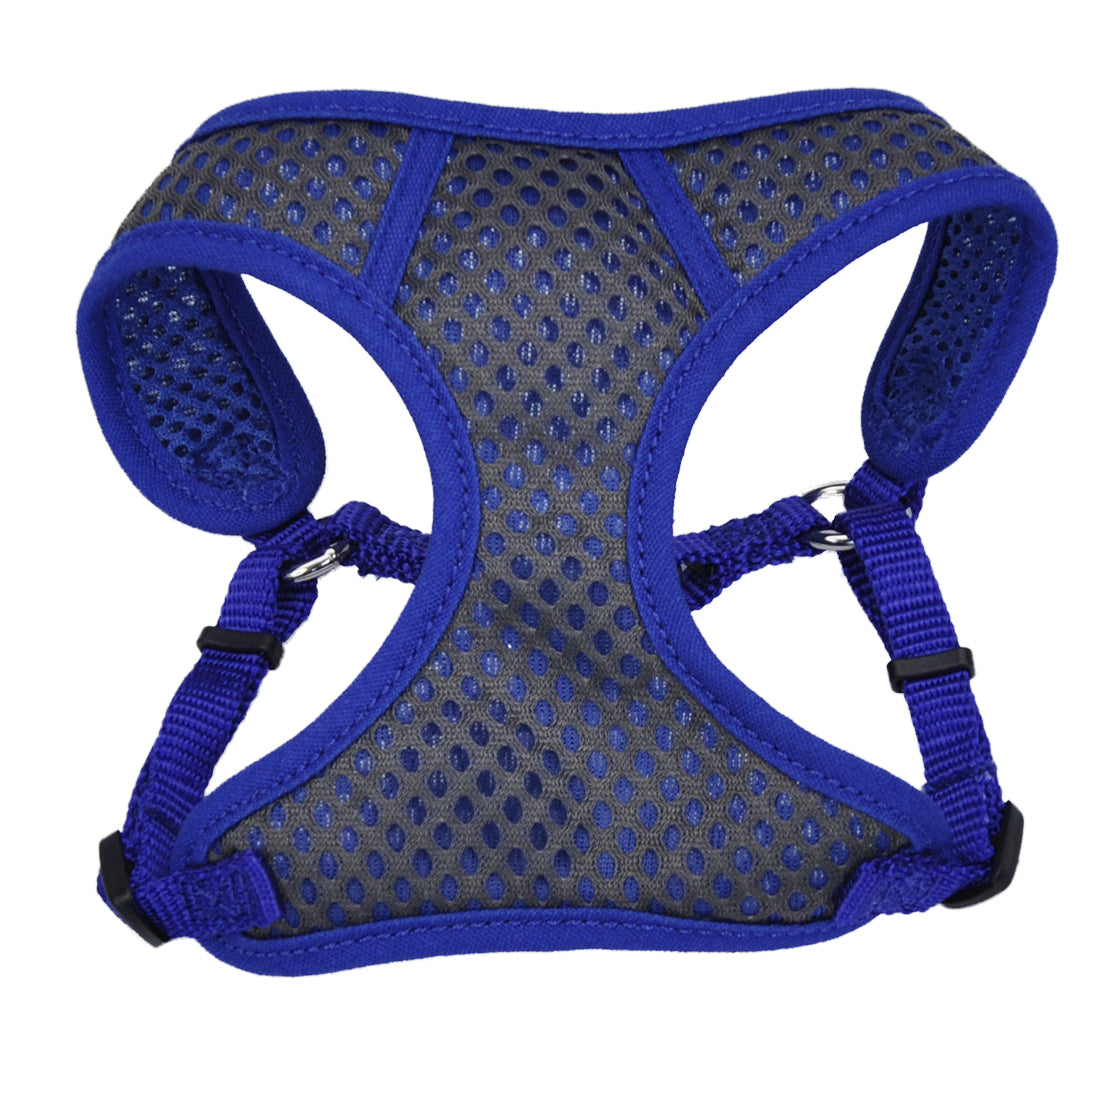 Coastal Sport Wrap Adjustable Harness Medium Blue